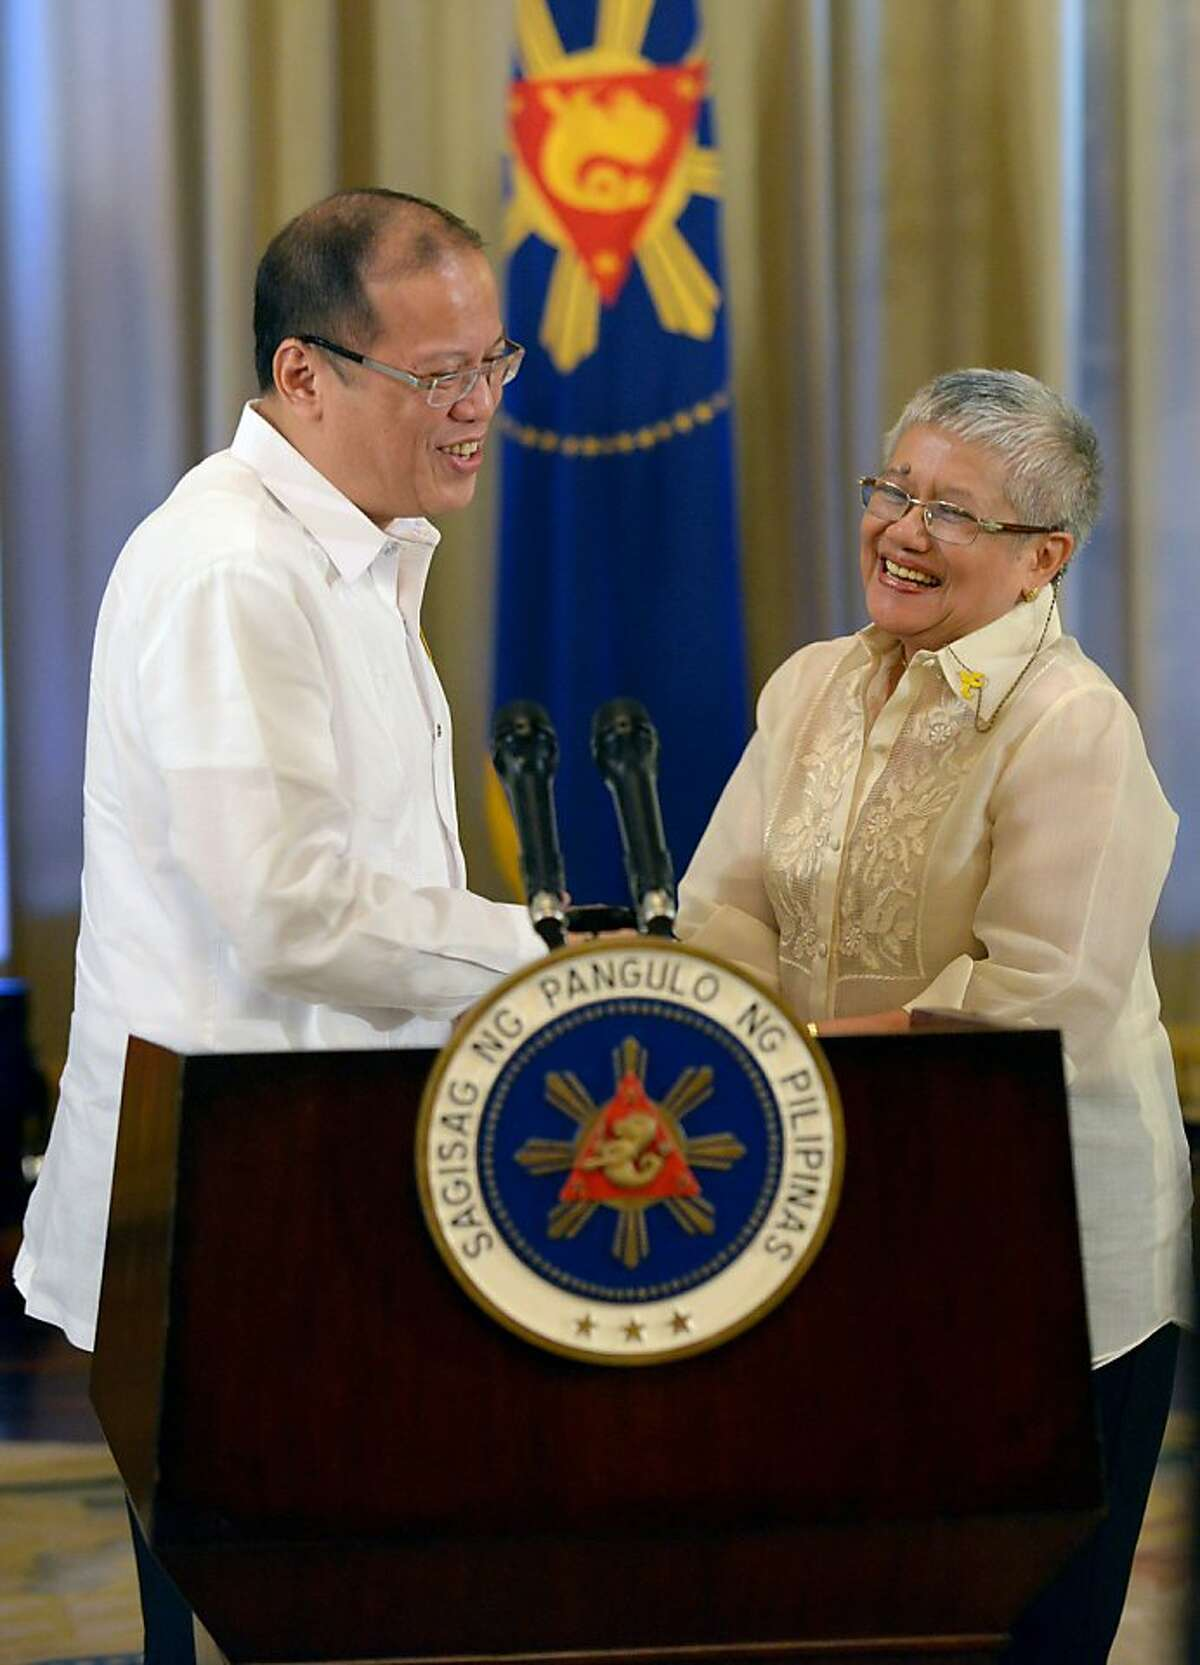 Philippines President Benigno Aquino (L) shakes hands with Presidential Adviser on the Peace Process, Secretary Teresita Quintos-Deles (R) at the Malacanang Palace in Manila on October 7, 2012. Philippine Muslim rebels said on October 7 they were